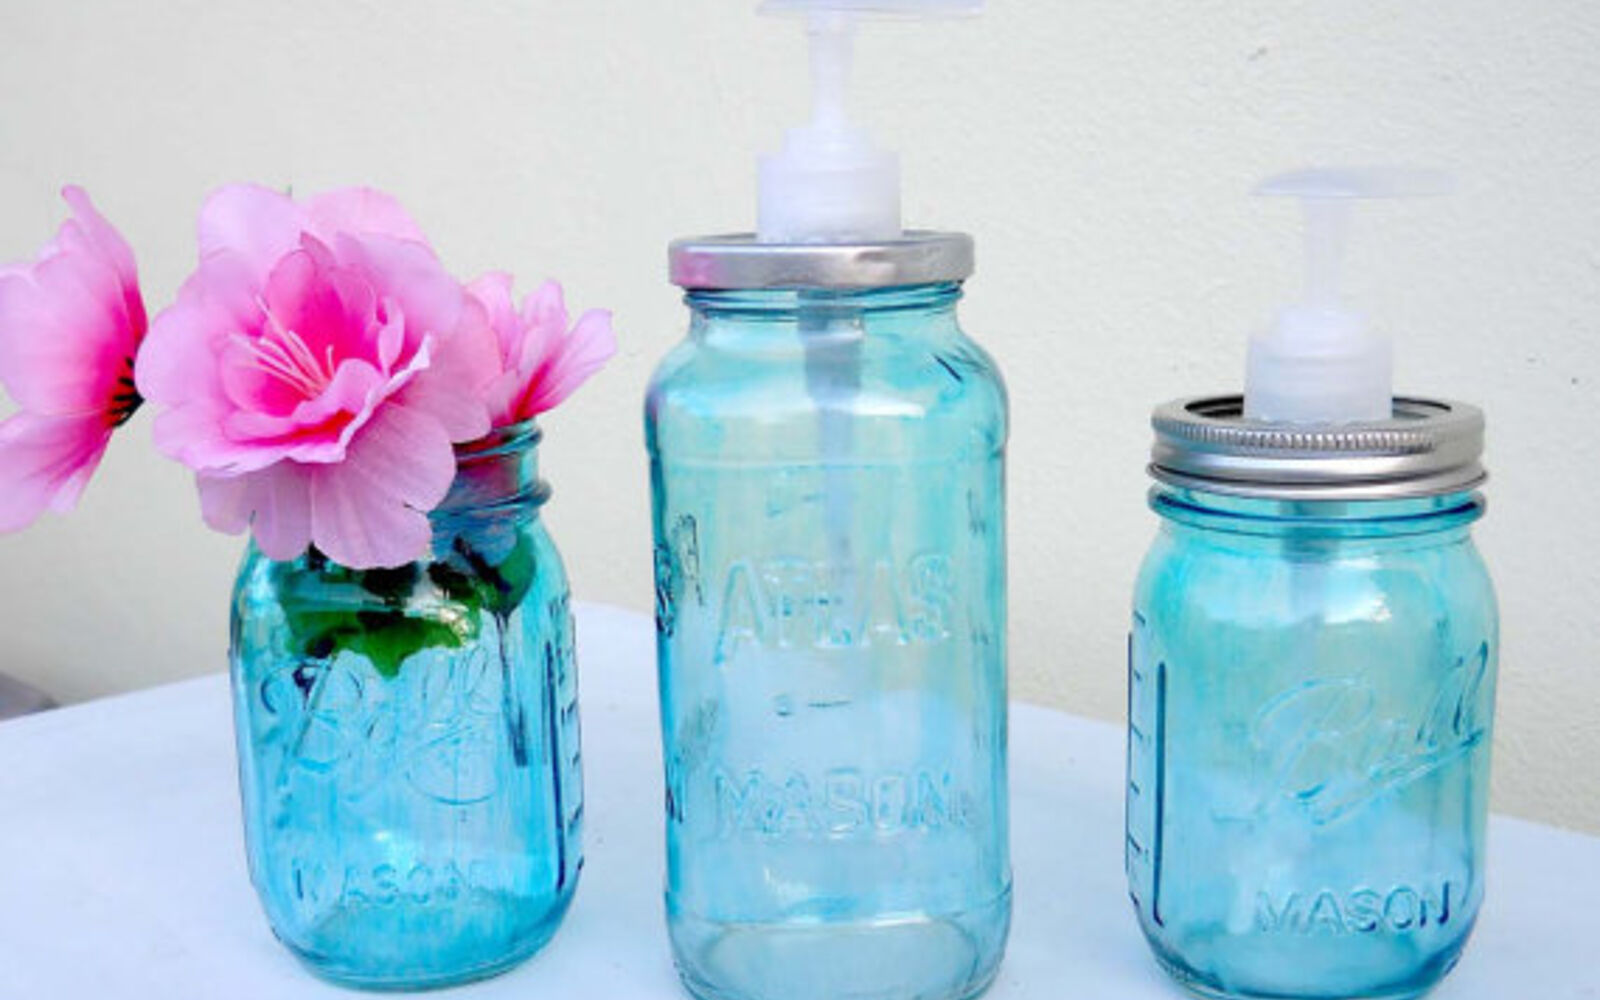 s 30 great mason jar ideas you have to try, Stunning Soap Dispenser